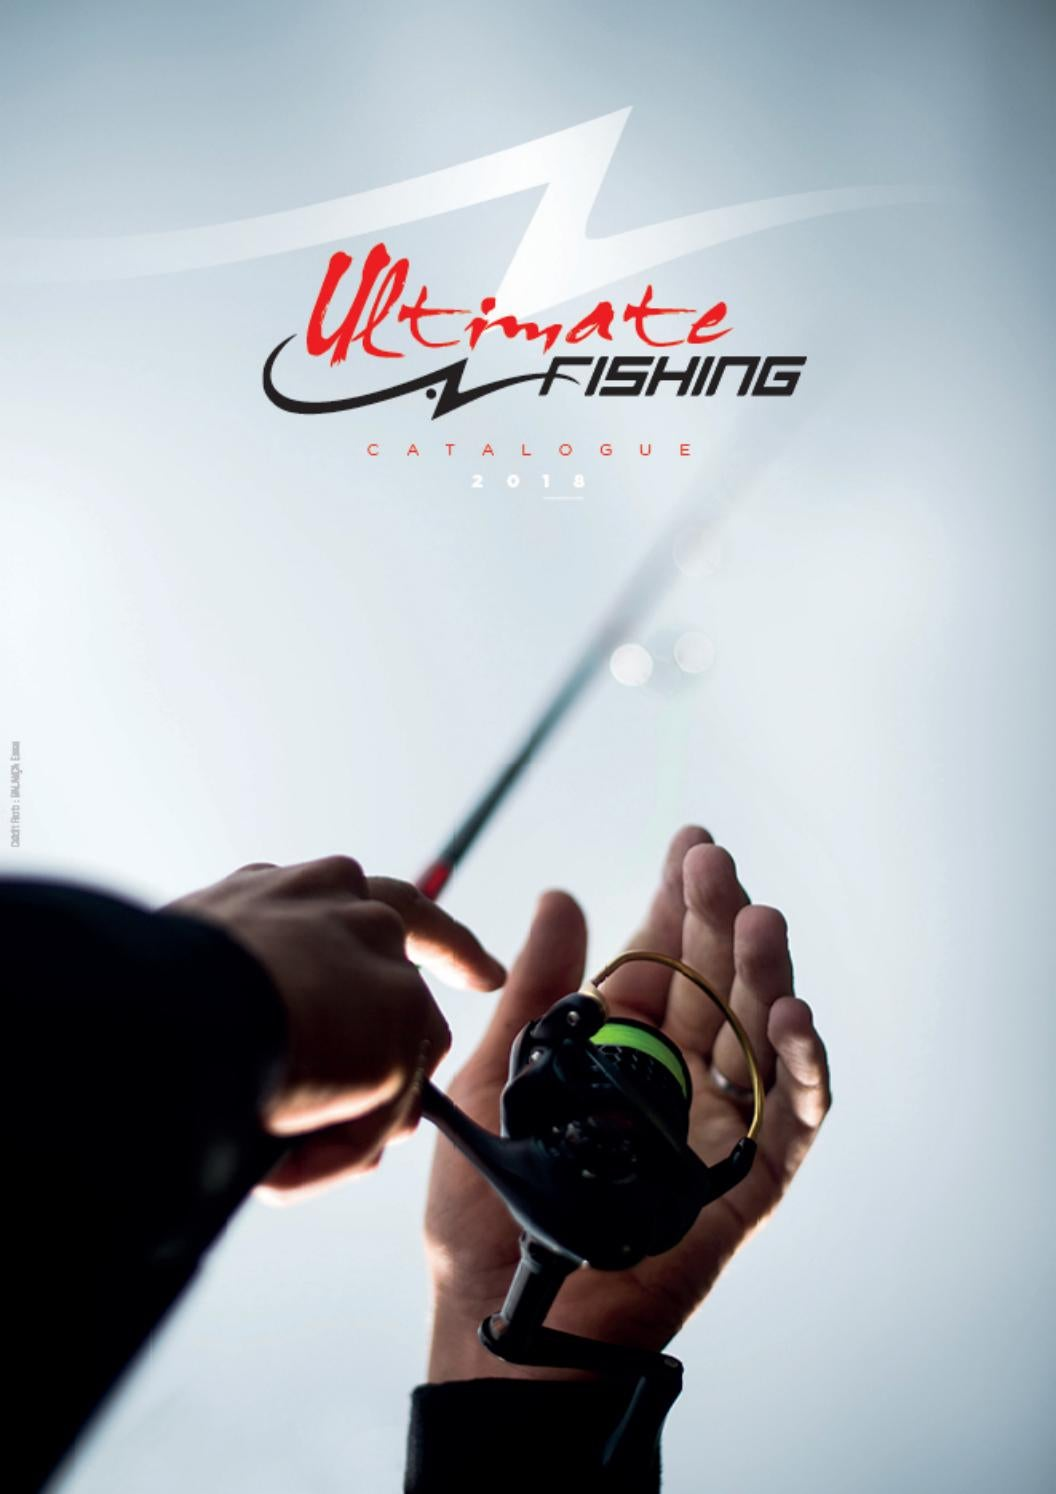 Flétan morue action shad 2+1 155 G 10//0 owner white red tail Giant Jigging